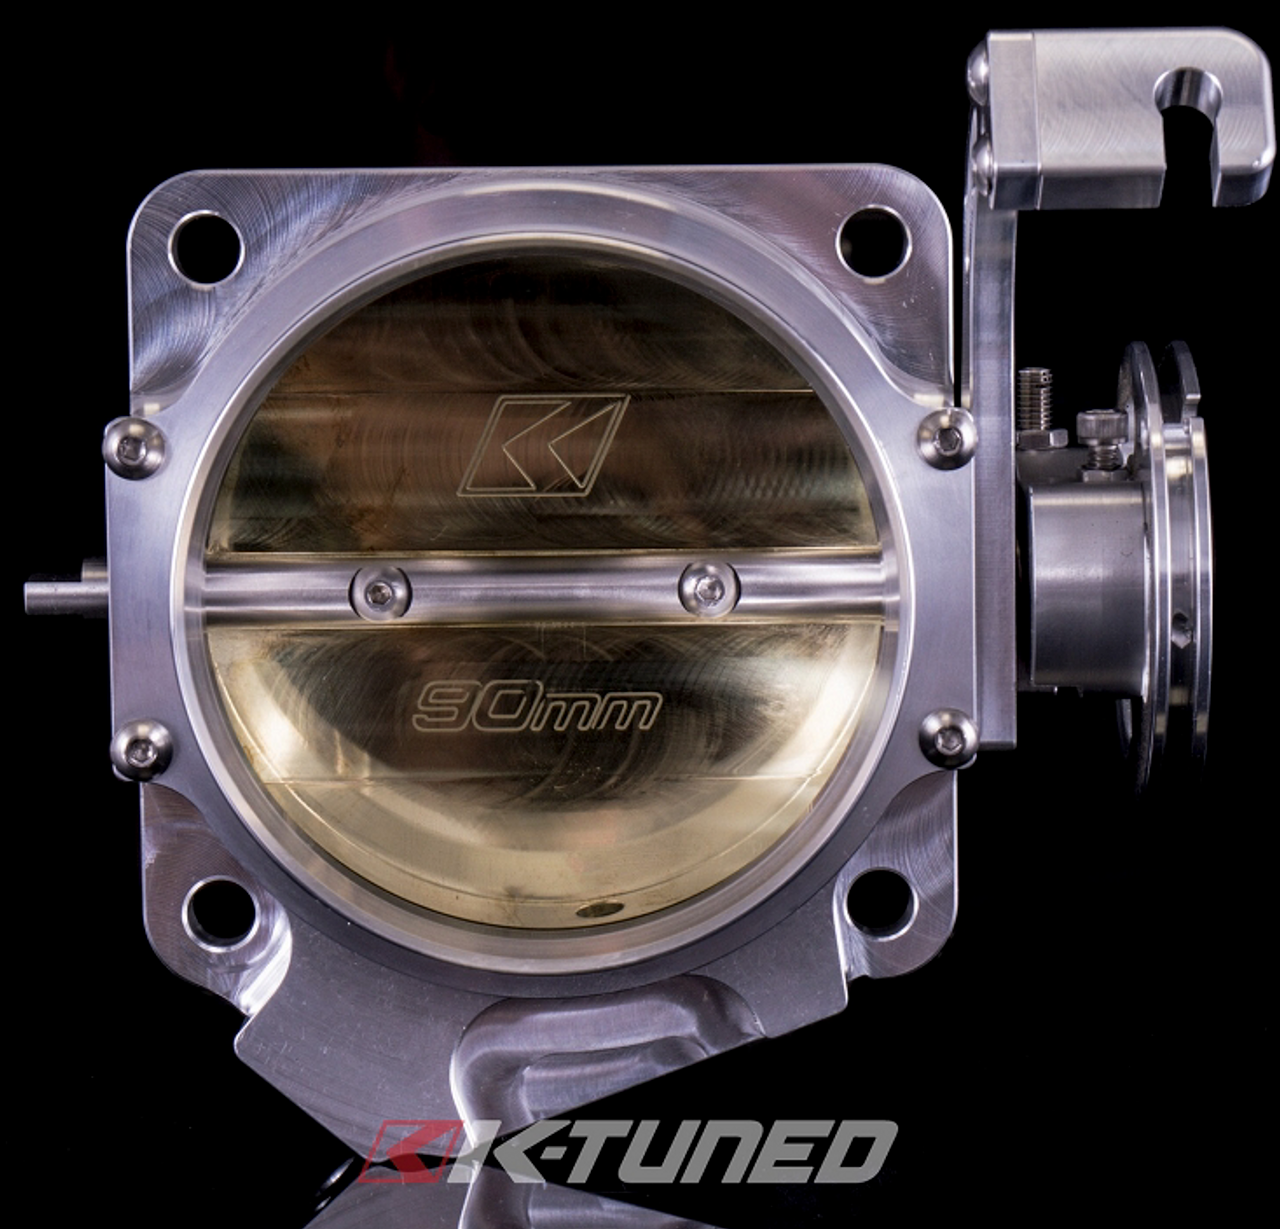 80mm Throttle Body w/ K-Series IACV and Map ports - B-Series TPS